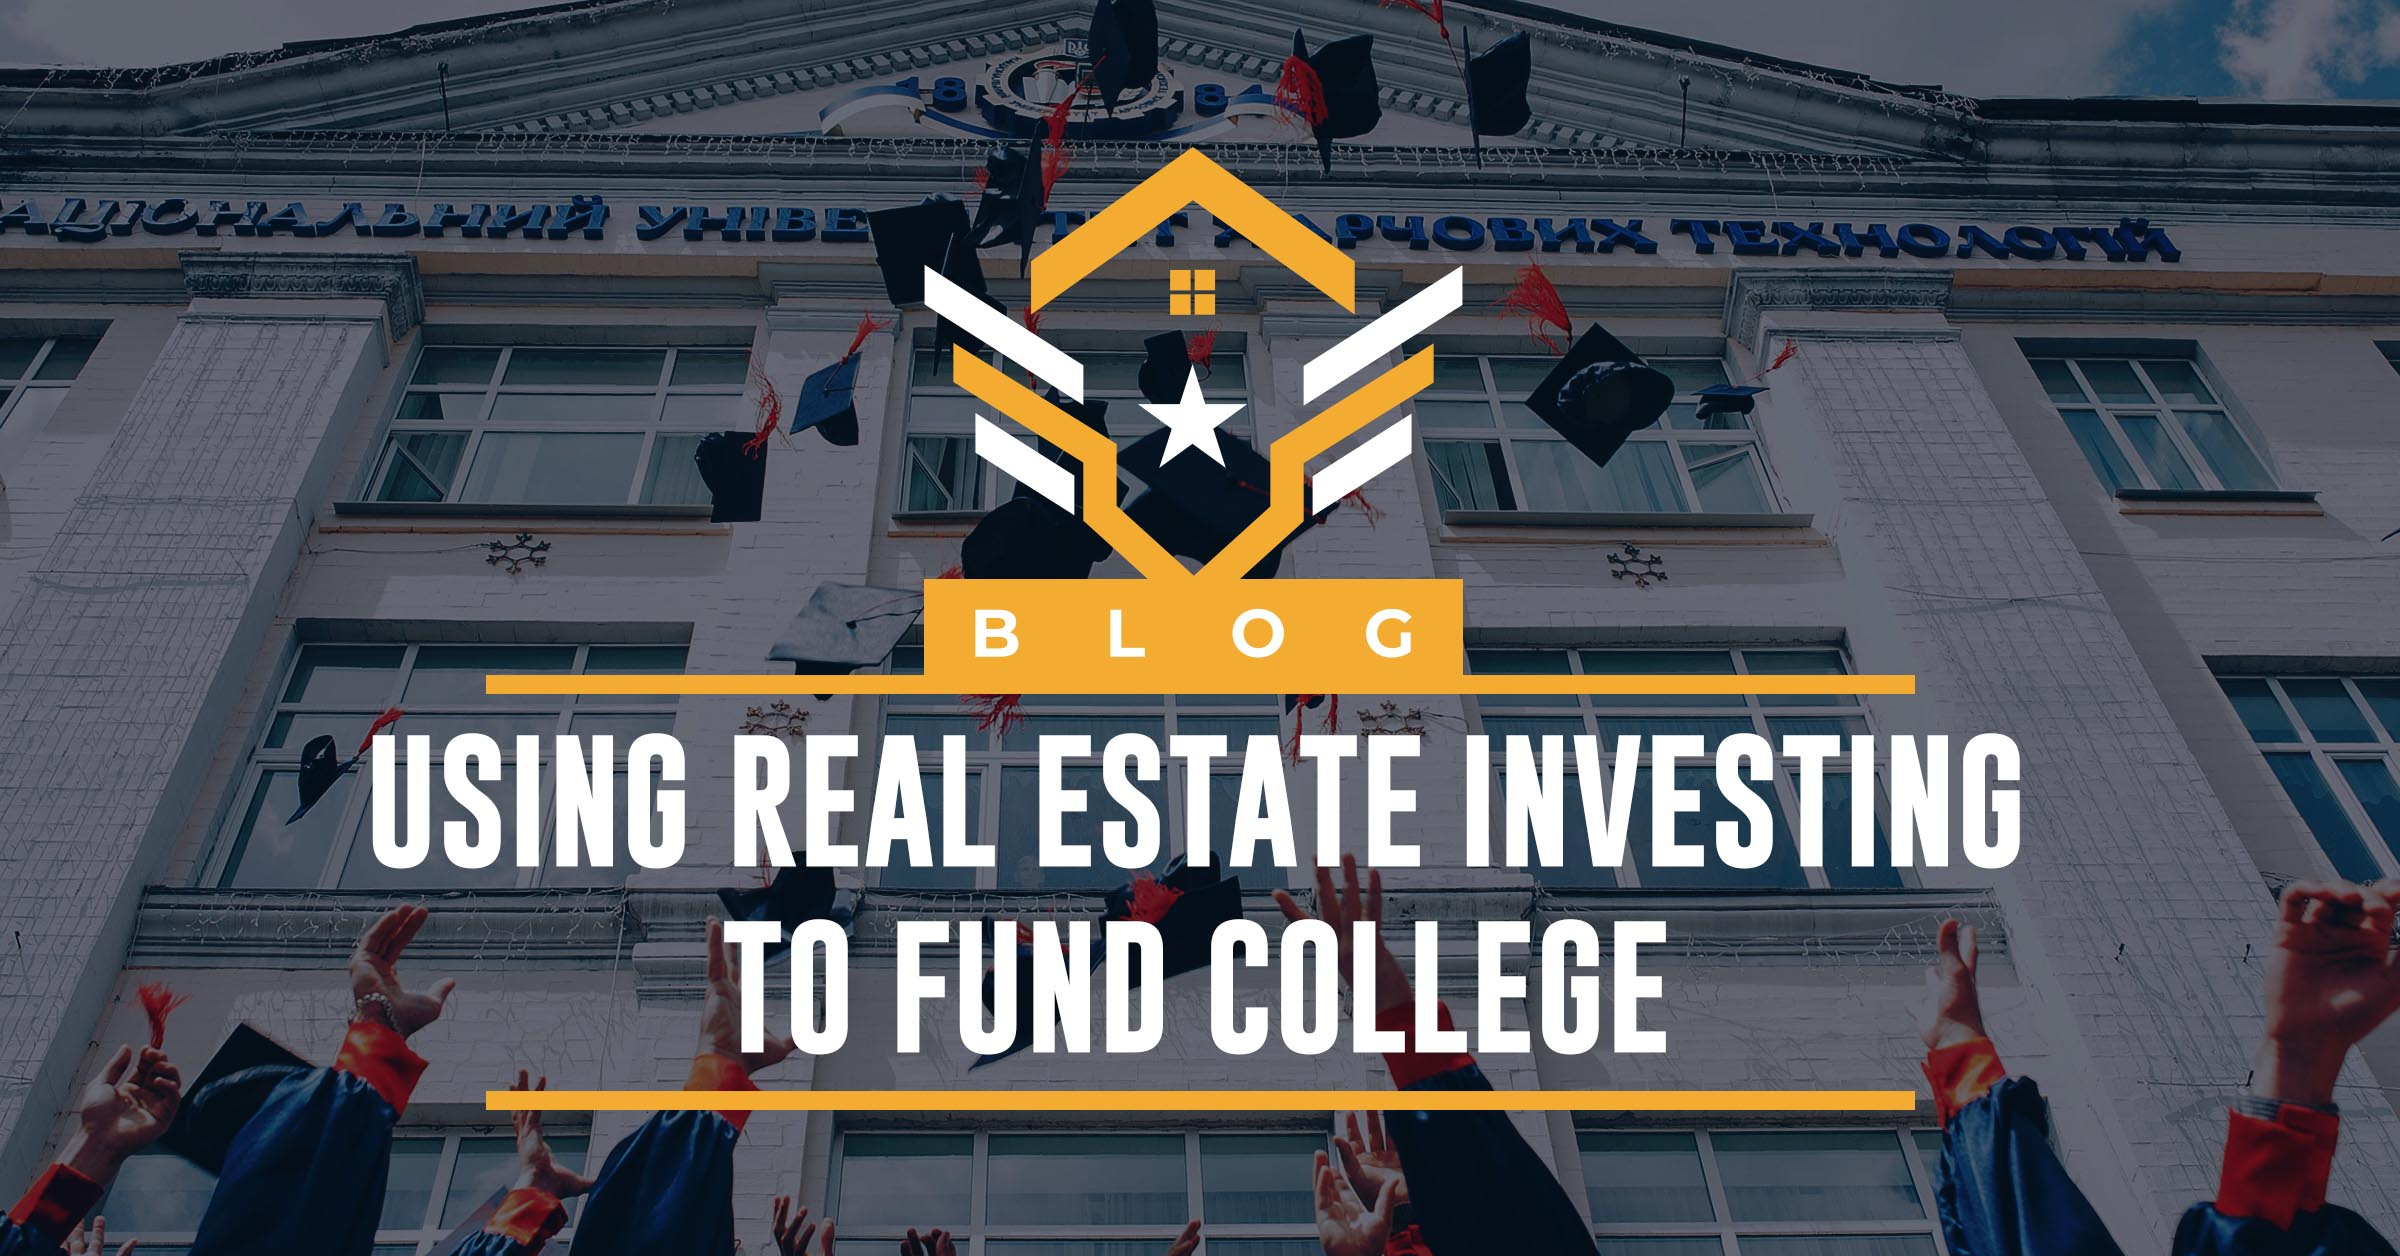 How to fund college with real estate